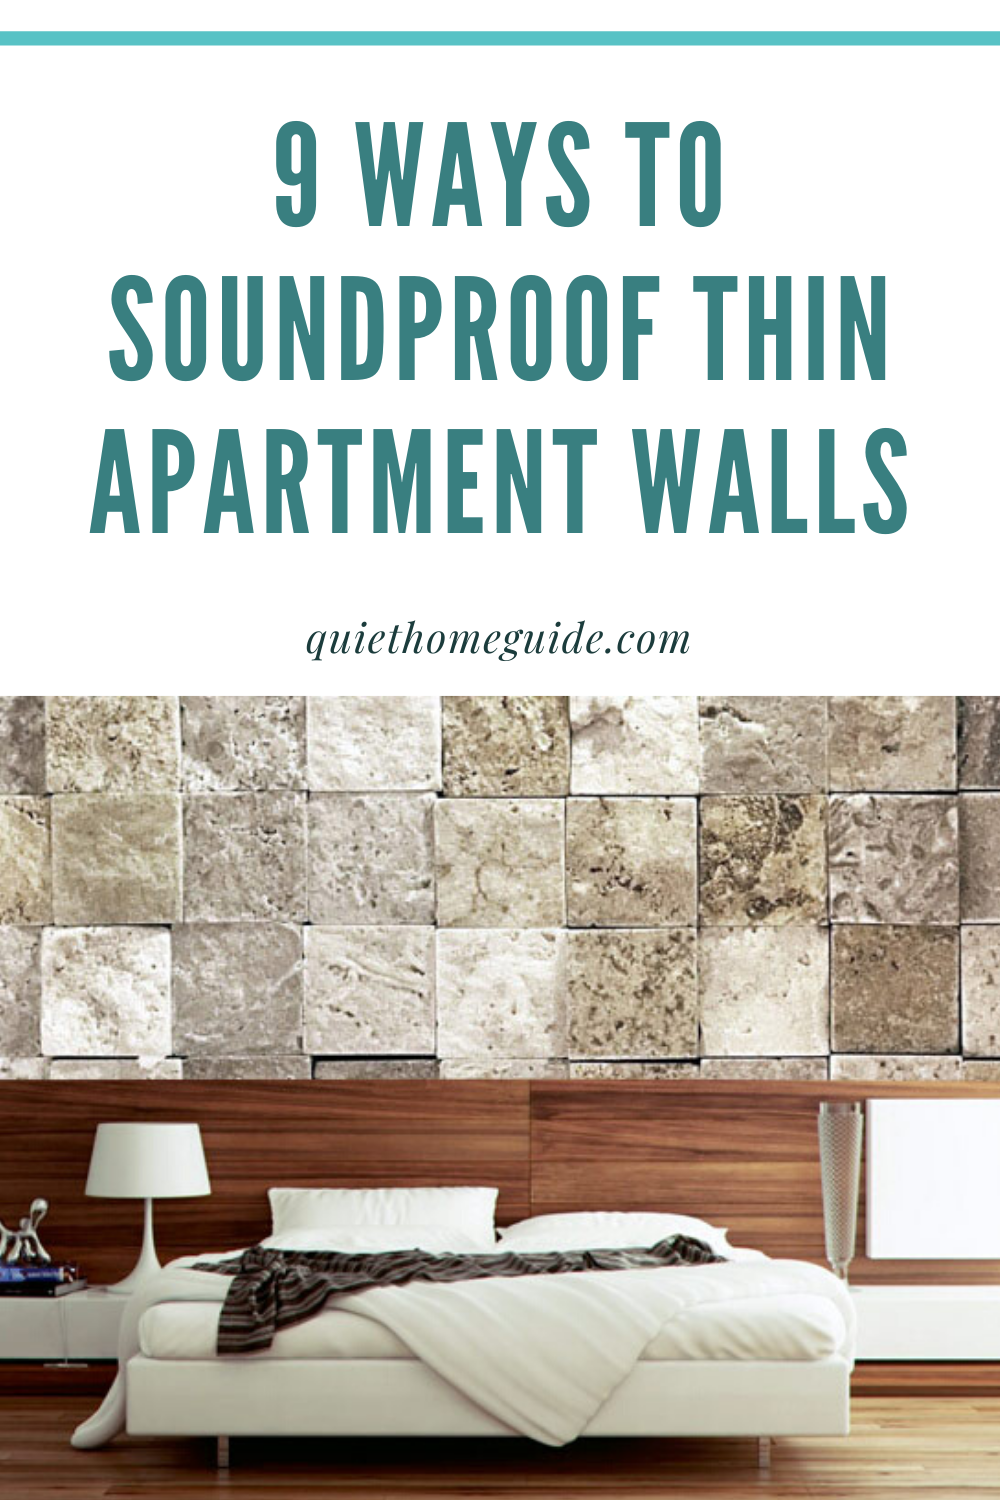 How To Soundproof Thin Apartment Walls In 2020 Apartment Walls Sound Proofing Sound Proofing Apartment